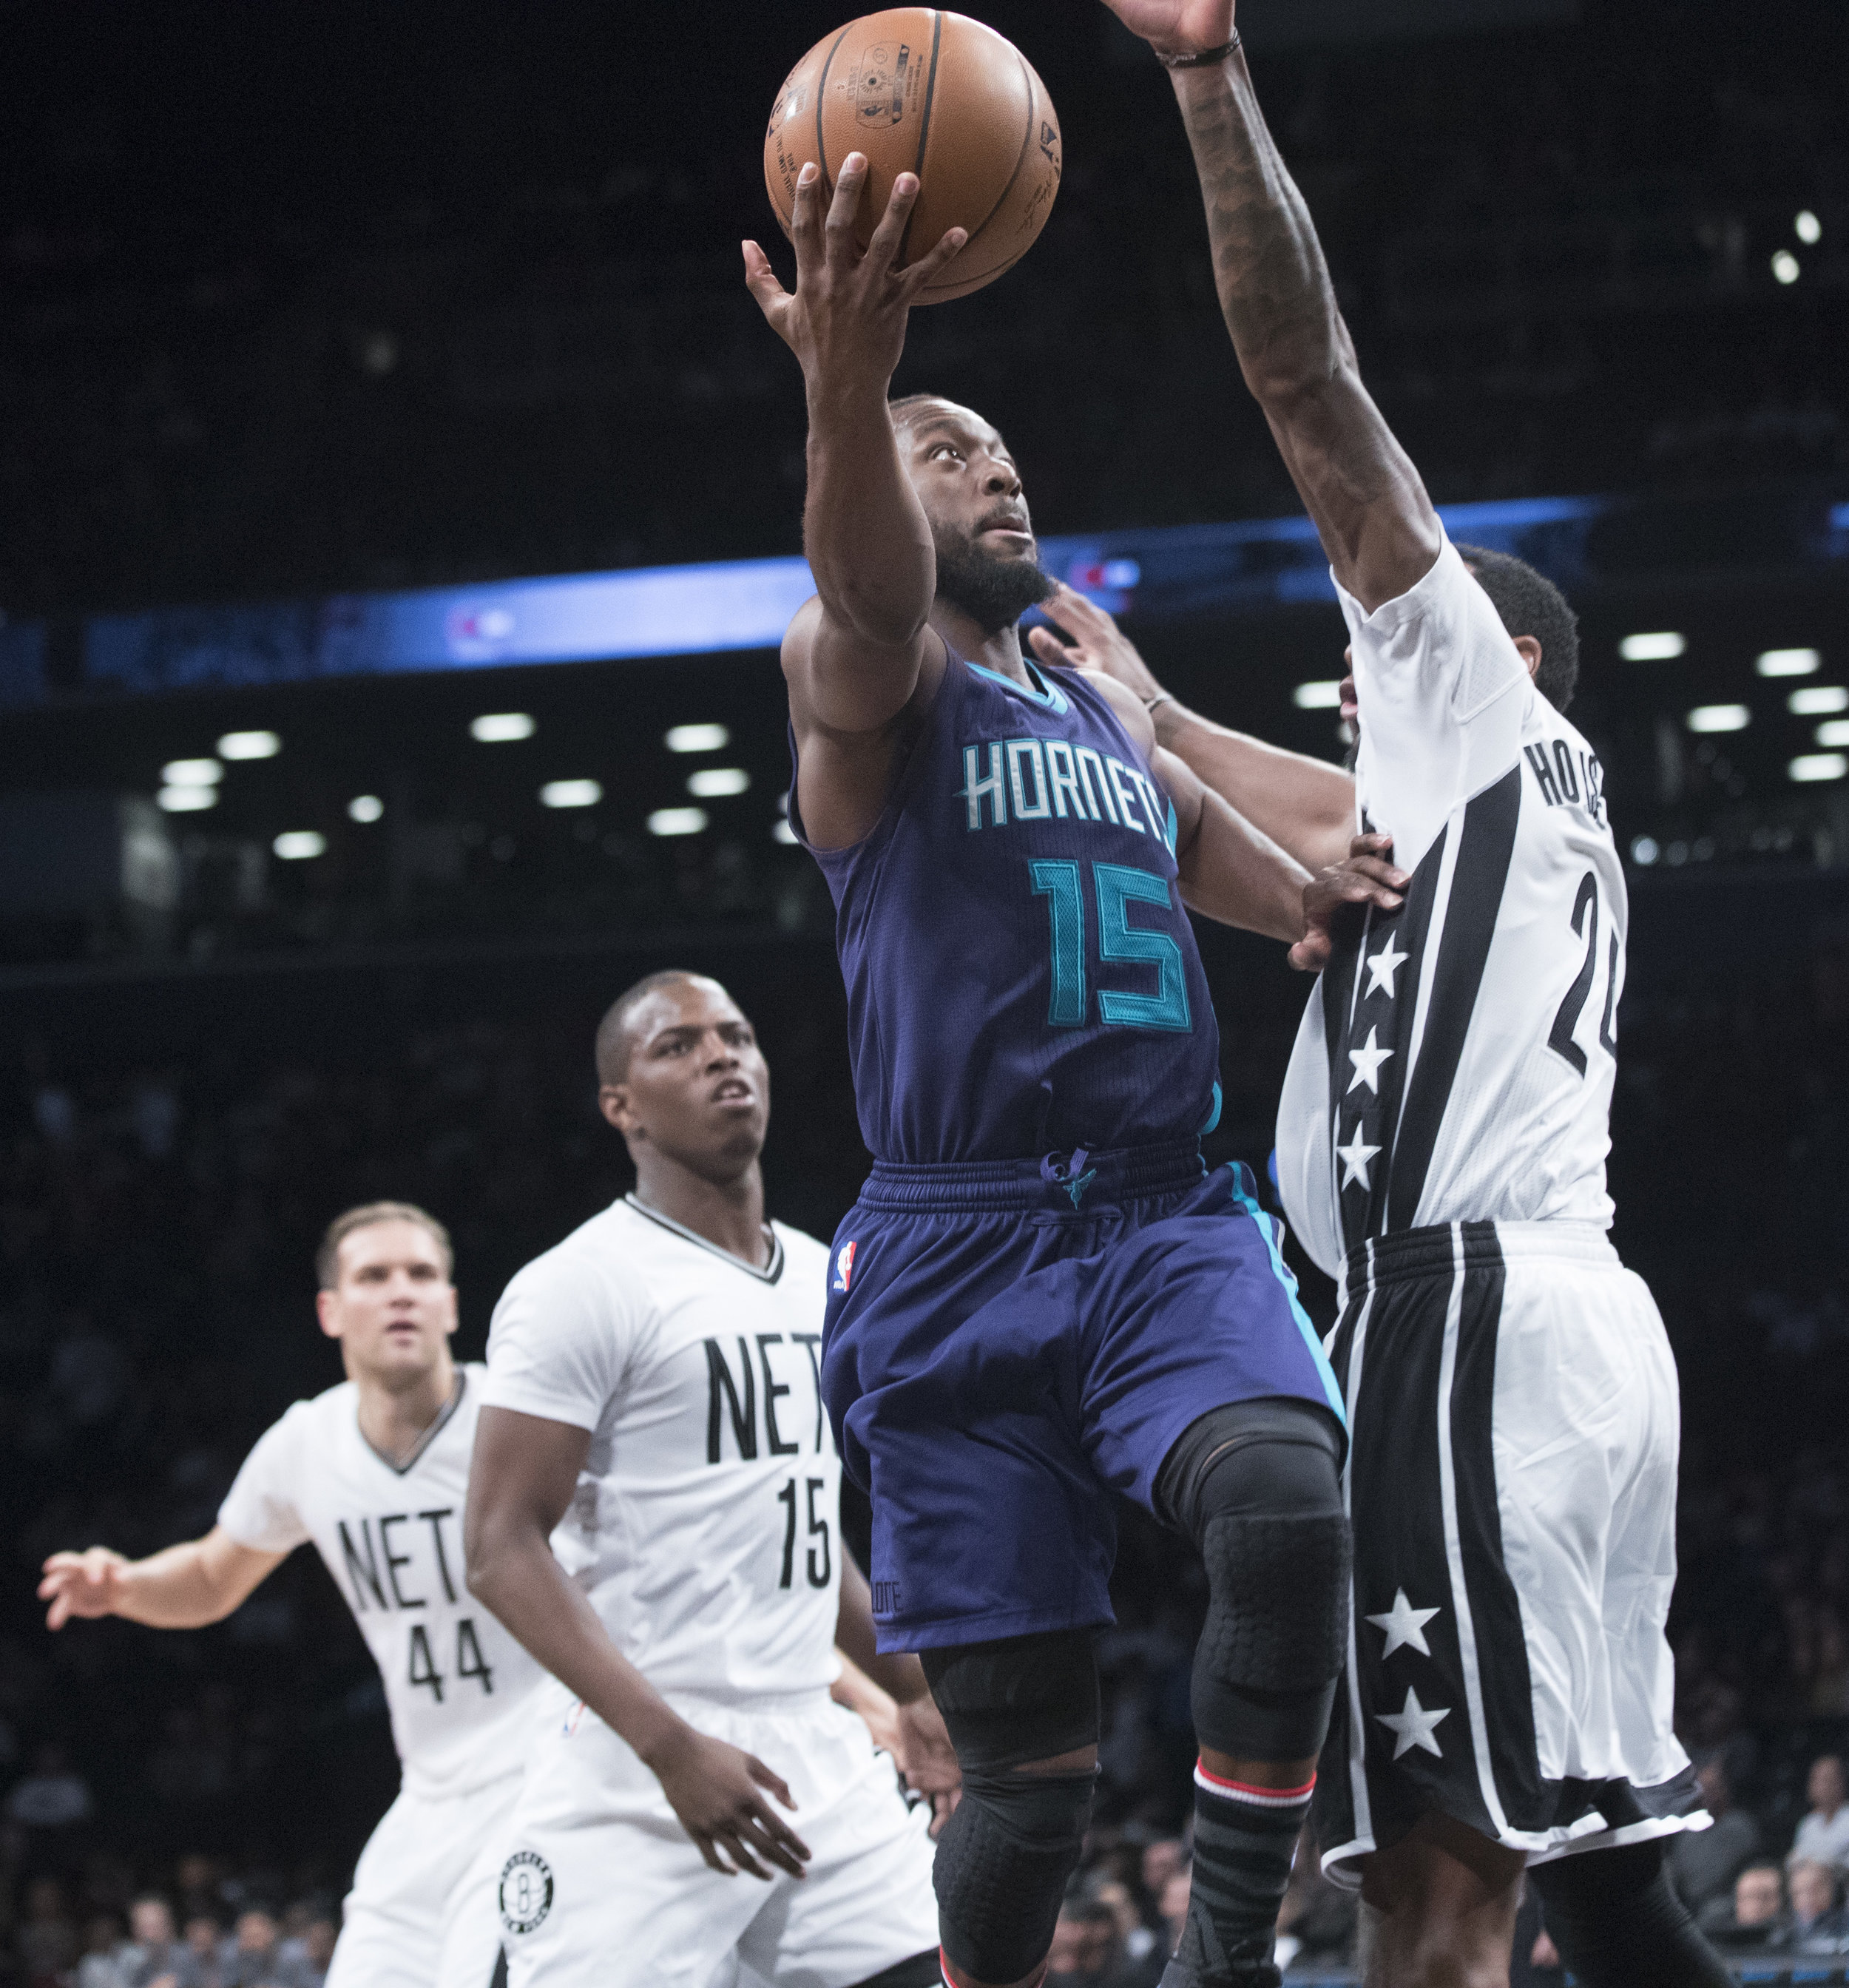 Charlotte Hornets guard Kemba Walker (15) goes to the basket past Brooklyn Nets guard Rondae Hollis-Jefferson (24) during the first half of an NBA basketball game, Friday, Nov. 4, 2016, in New York. (Mary Altaffer/AP Photo)